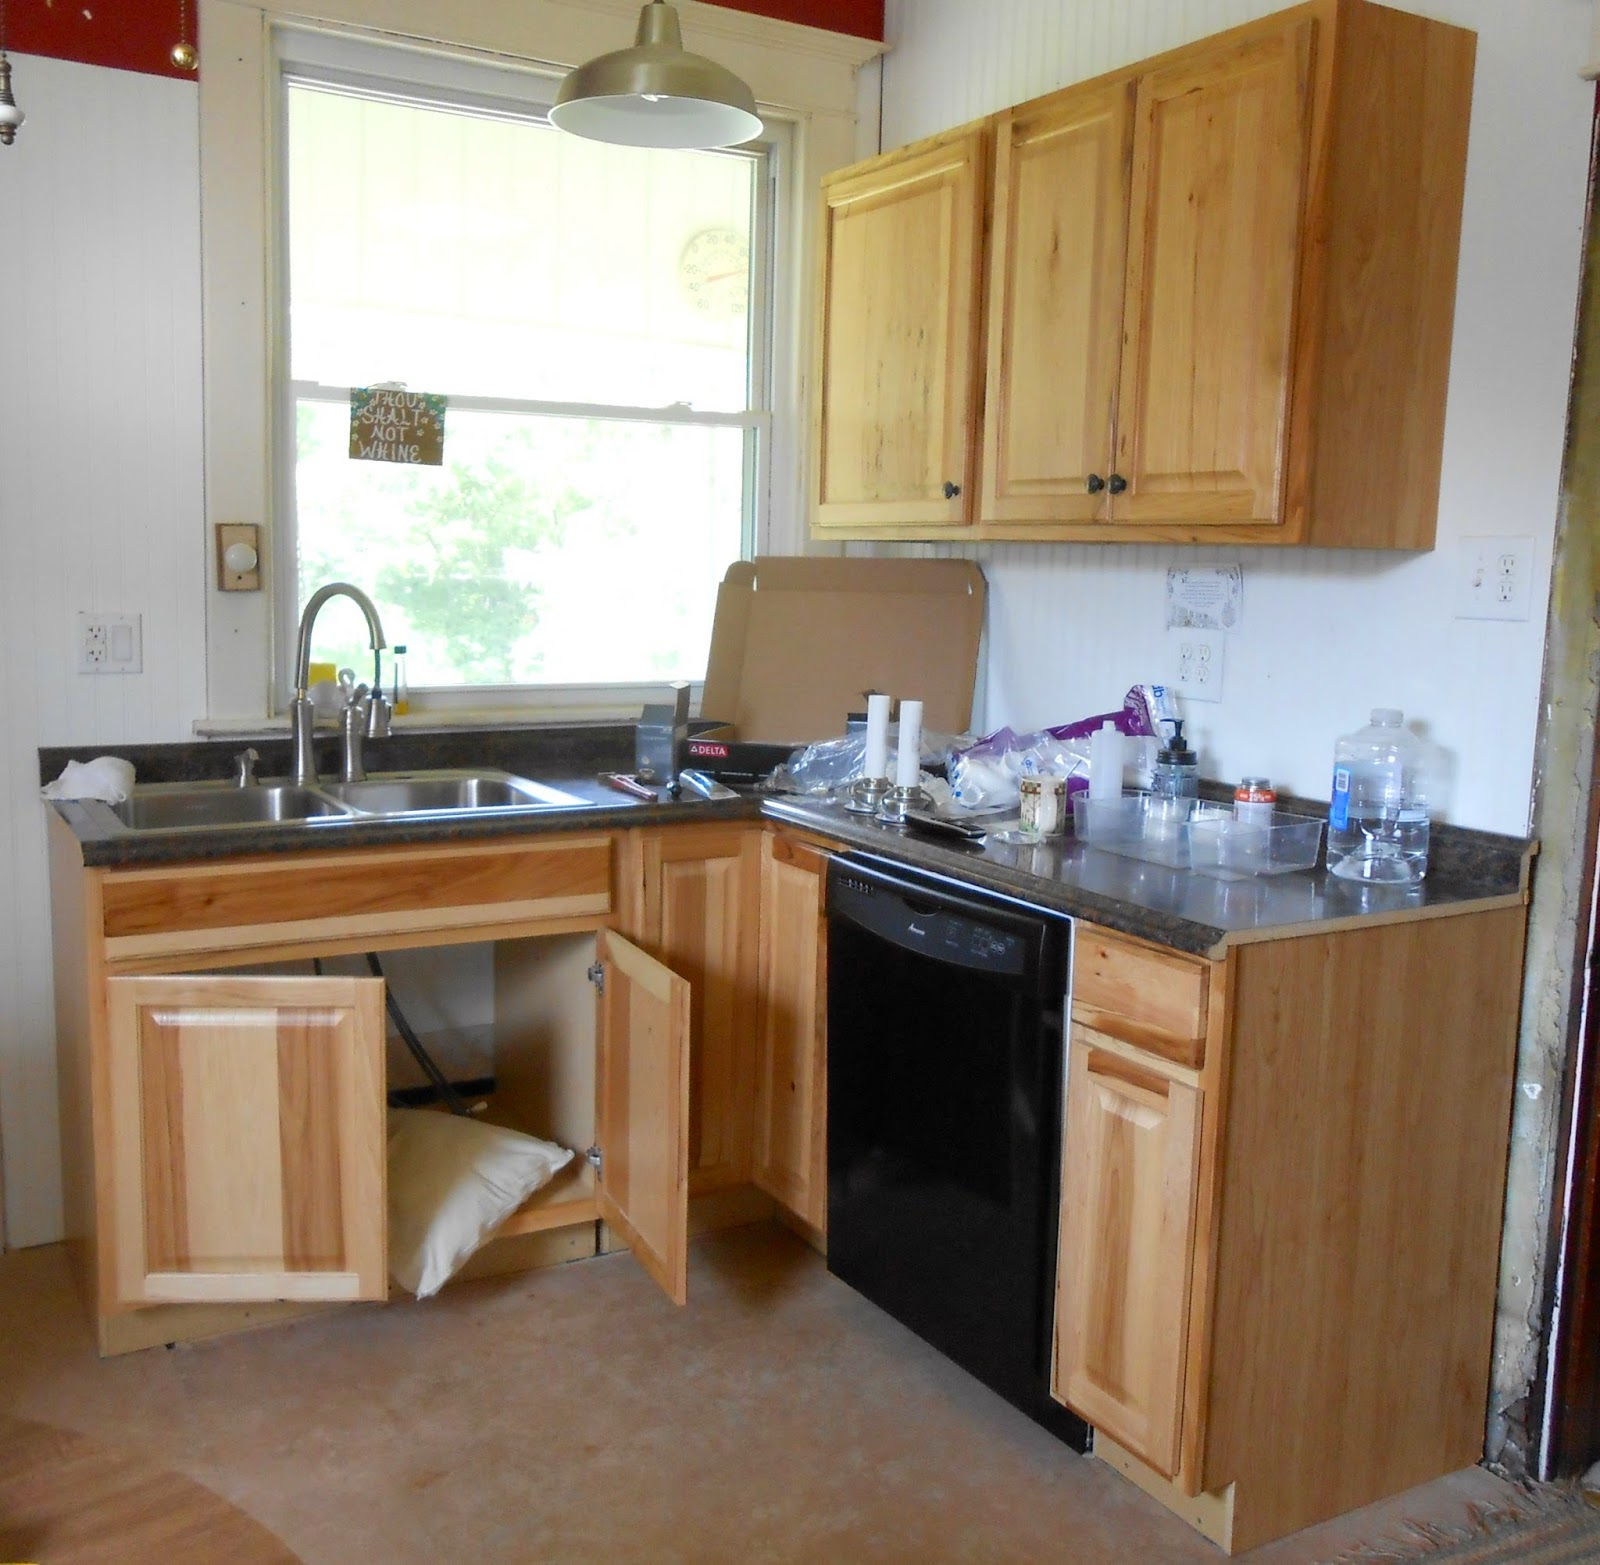 Kitchen Sink Plumbing With Dishwasher And Drinking Water Spigot